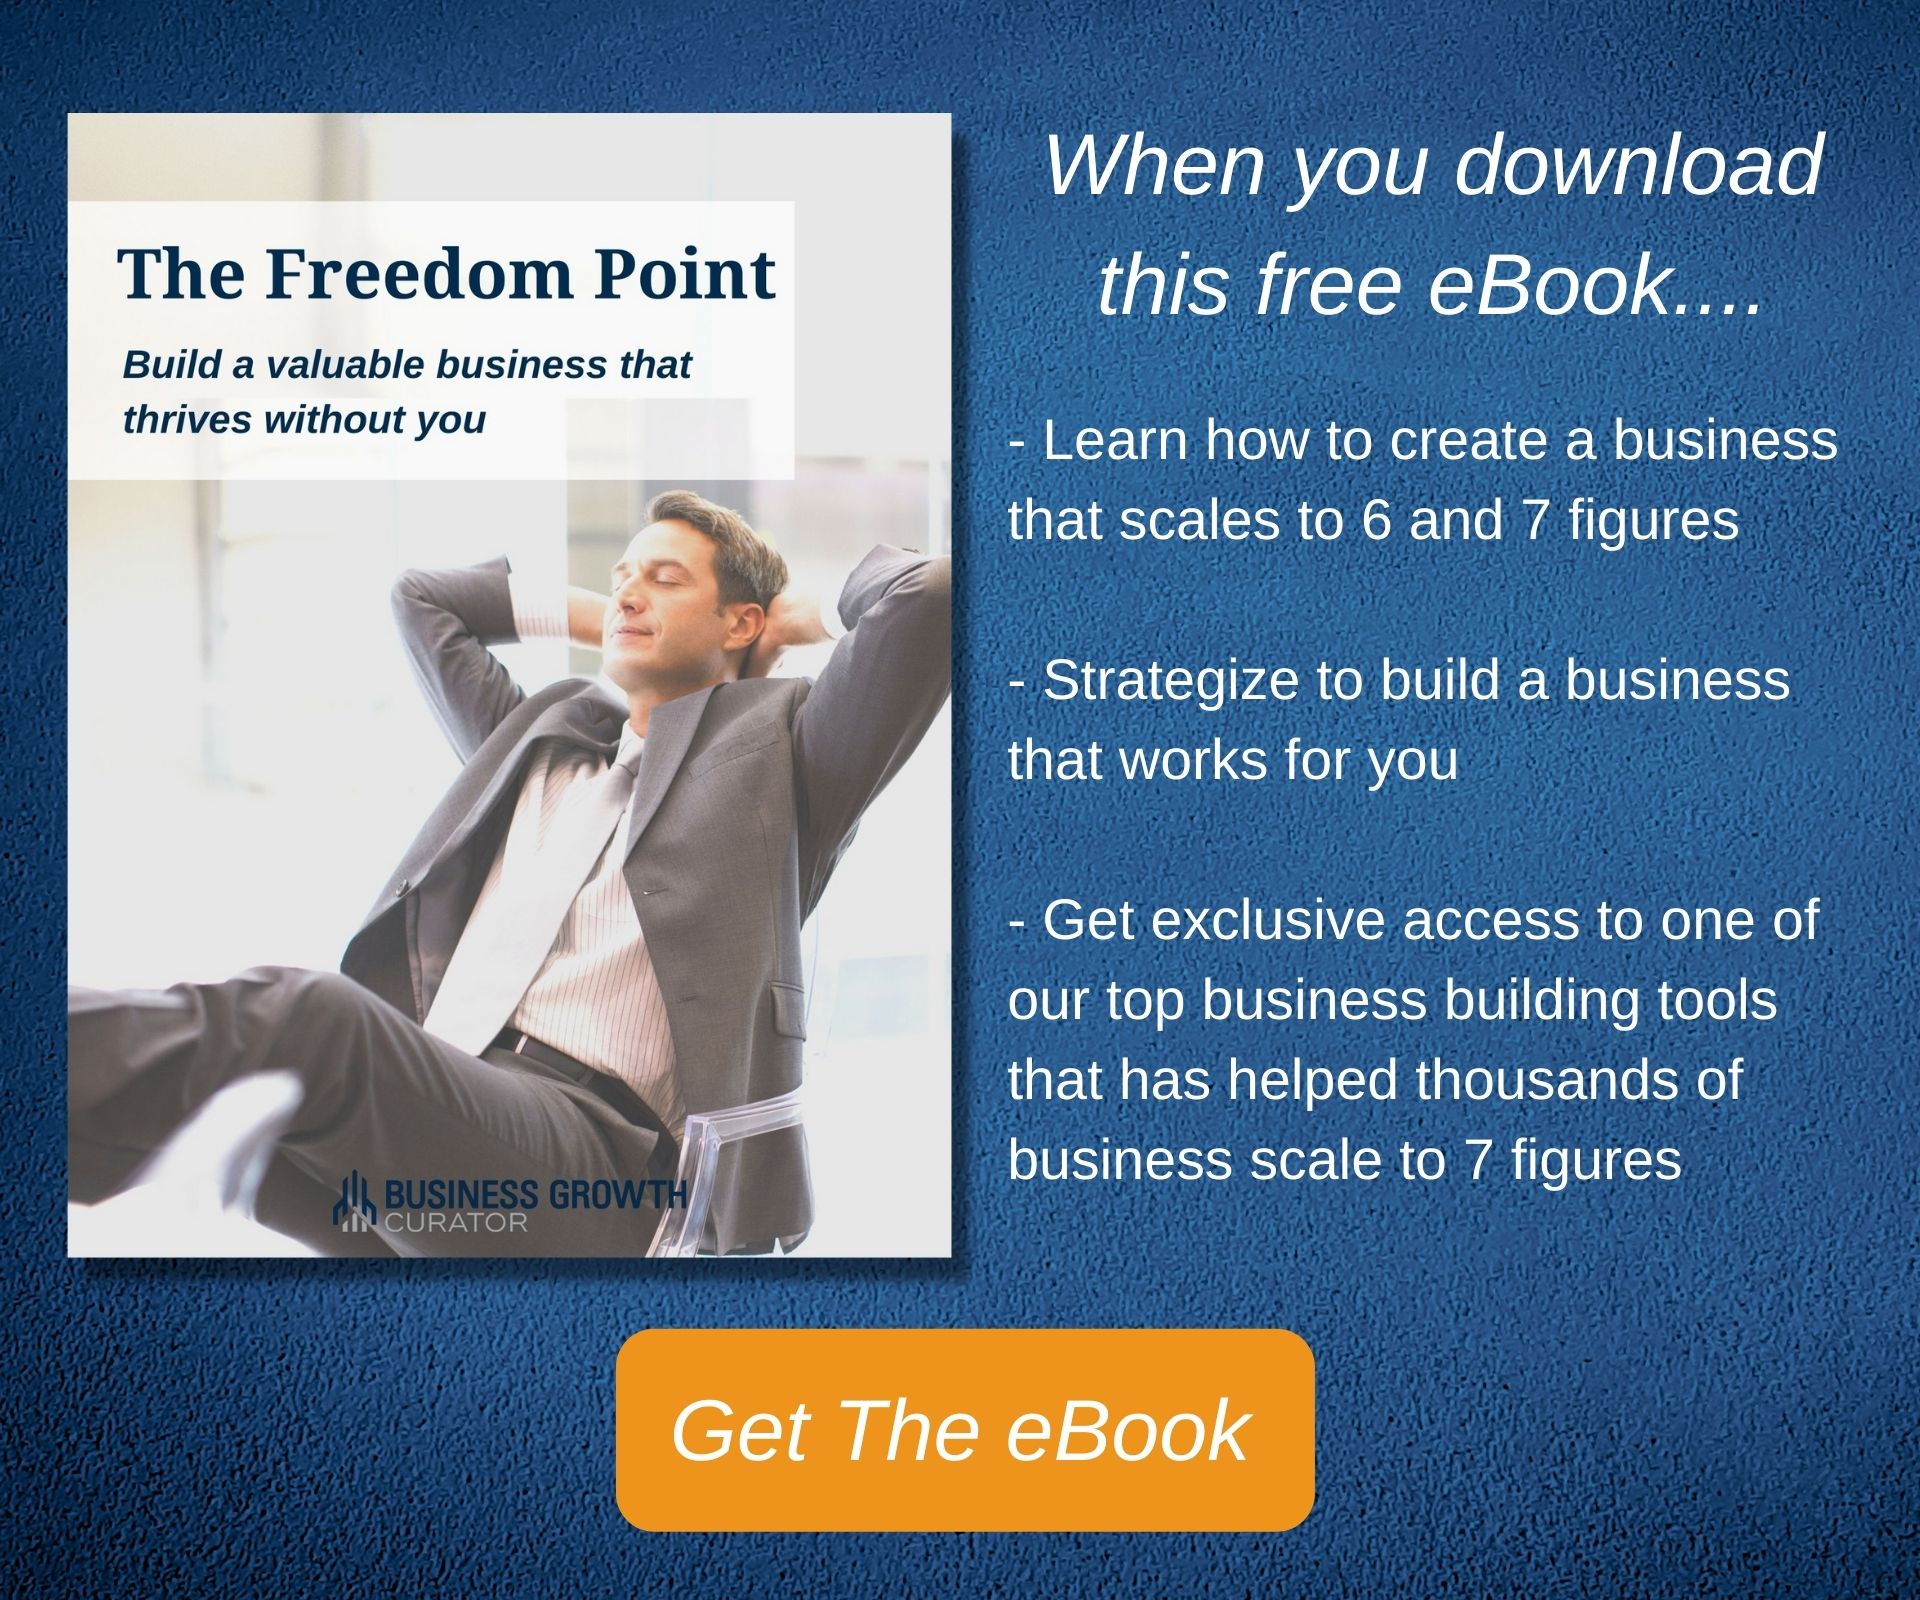 download the freedom point ebook for free!